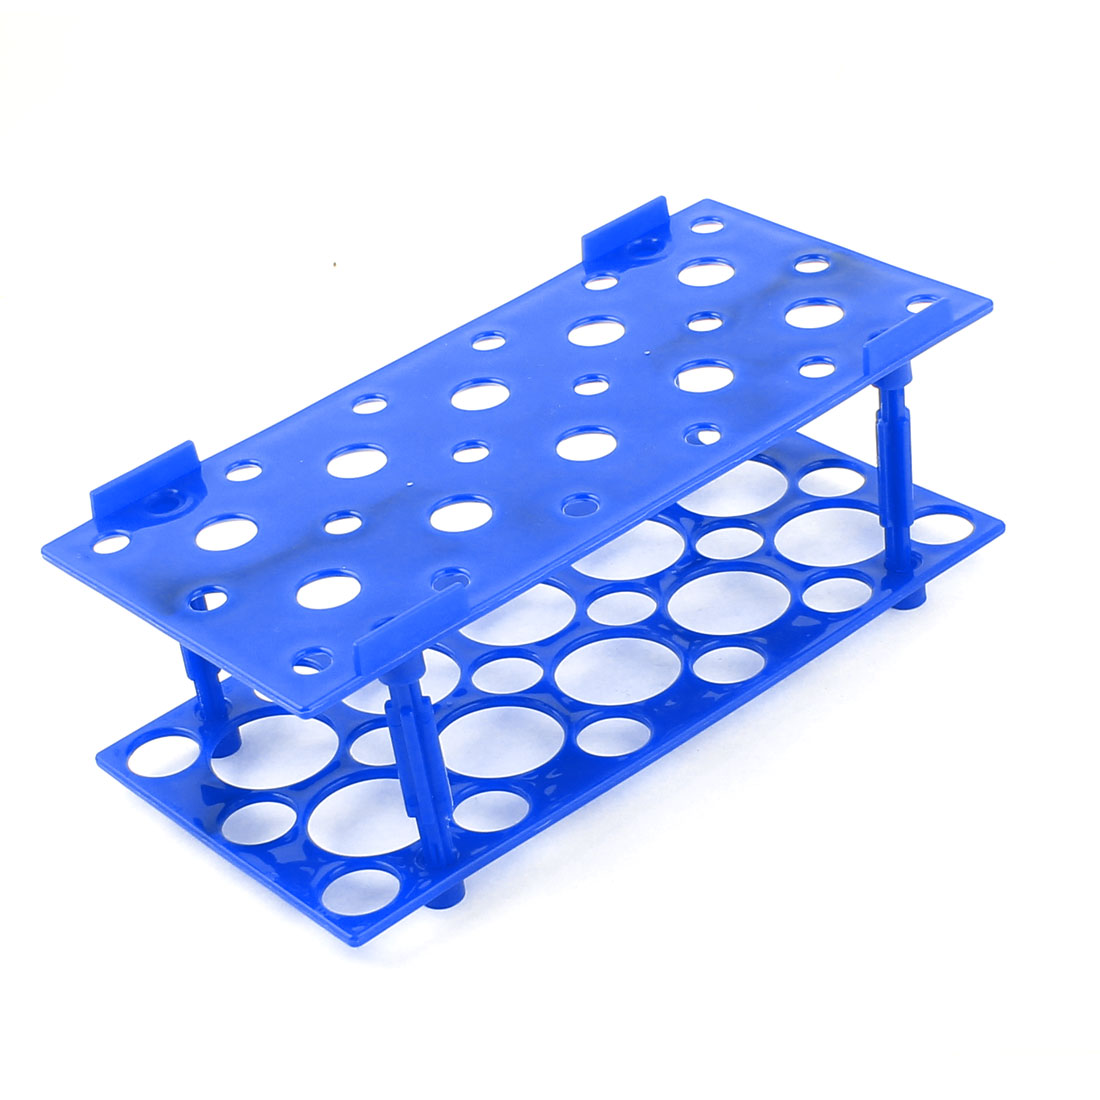 Blue Plastic 28 Holes Detachable Rack Holder Support Basket for 16-29mm Test Tubes